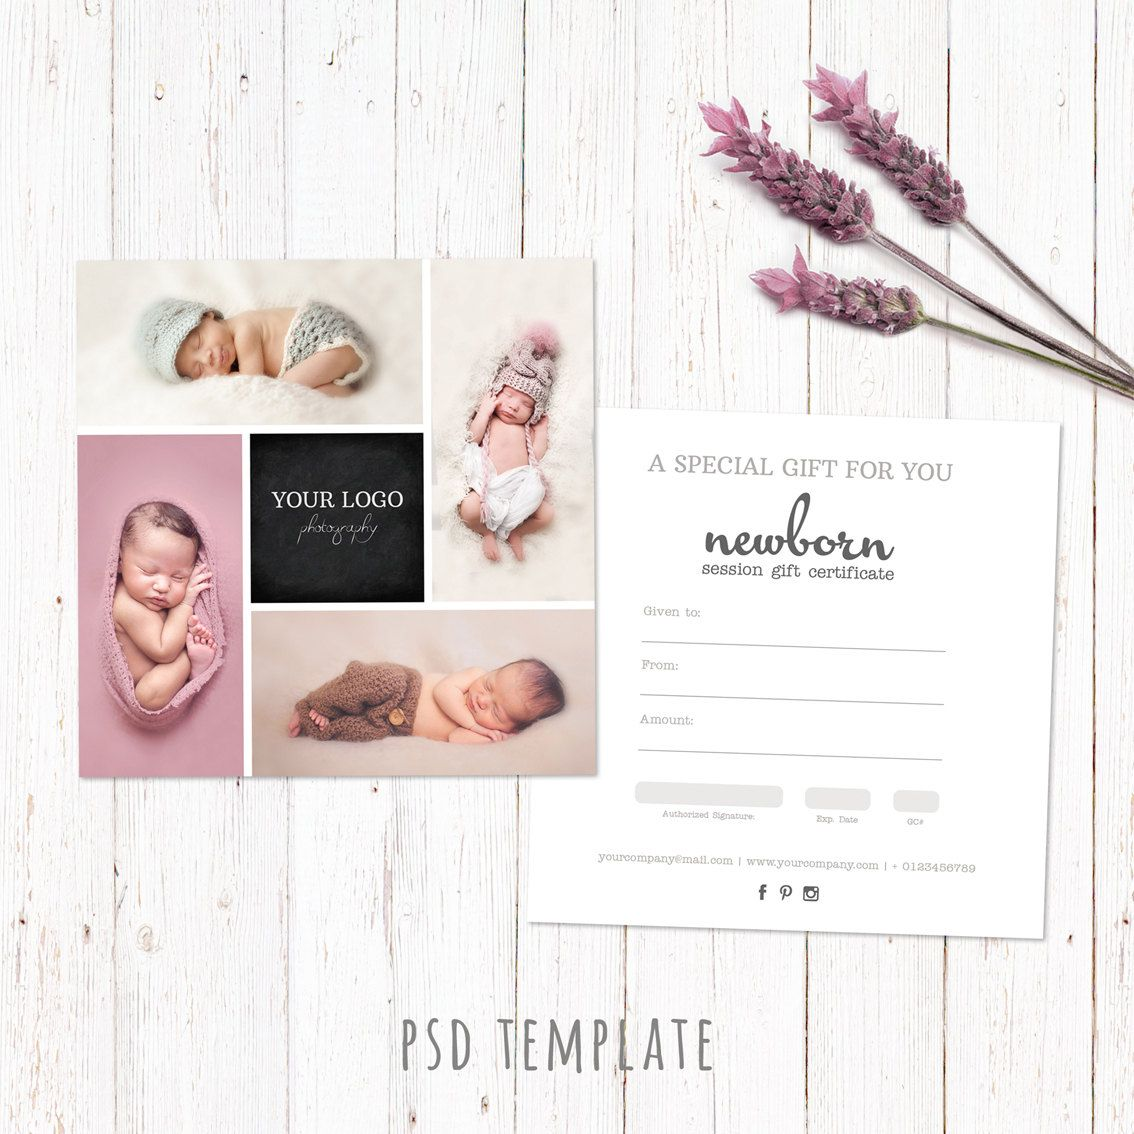 gift certificate template newborn session photography gift card gift certificate template newborn session photography gift card marketing voucher card fully editable